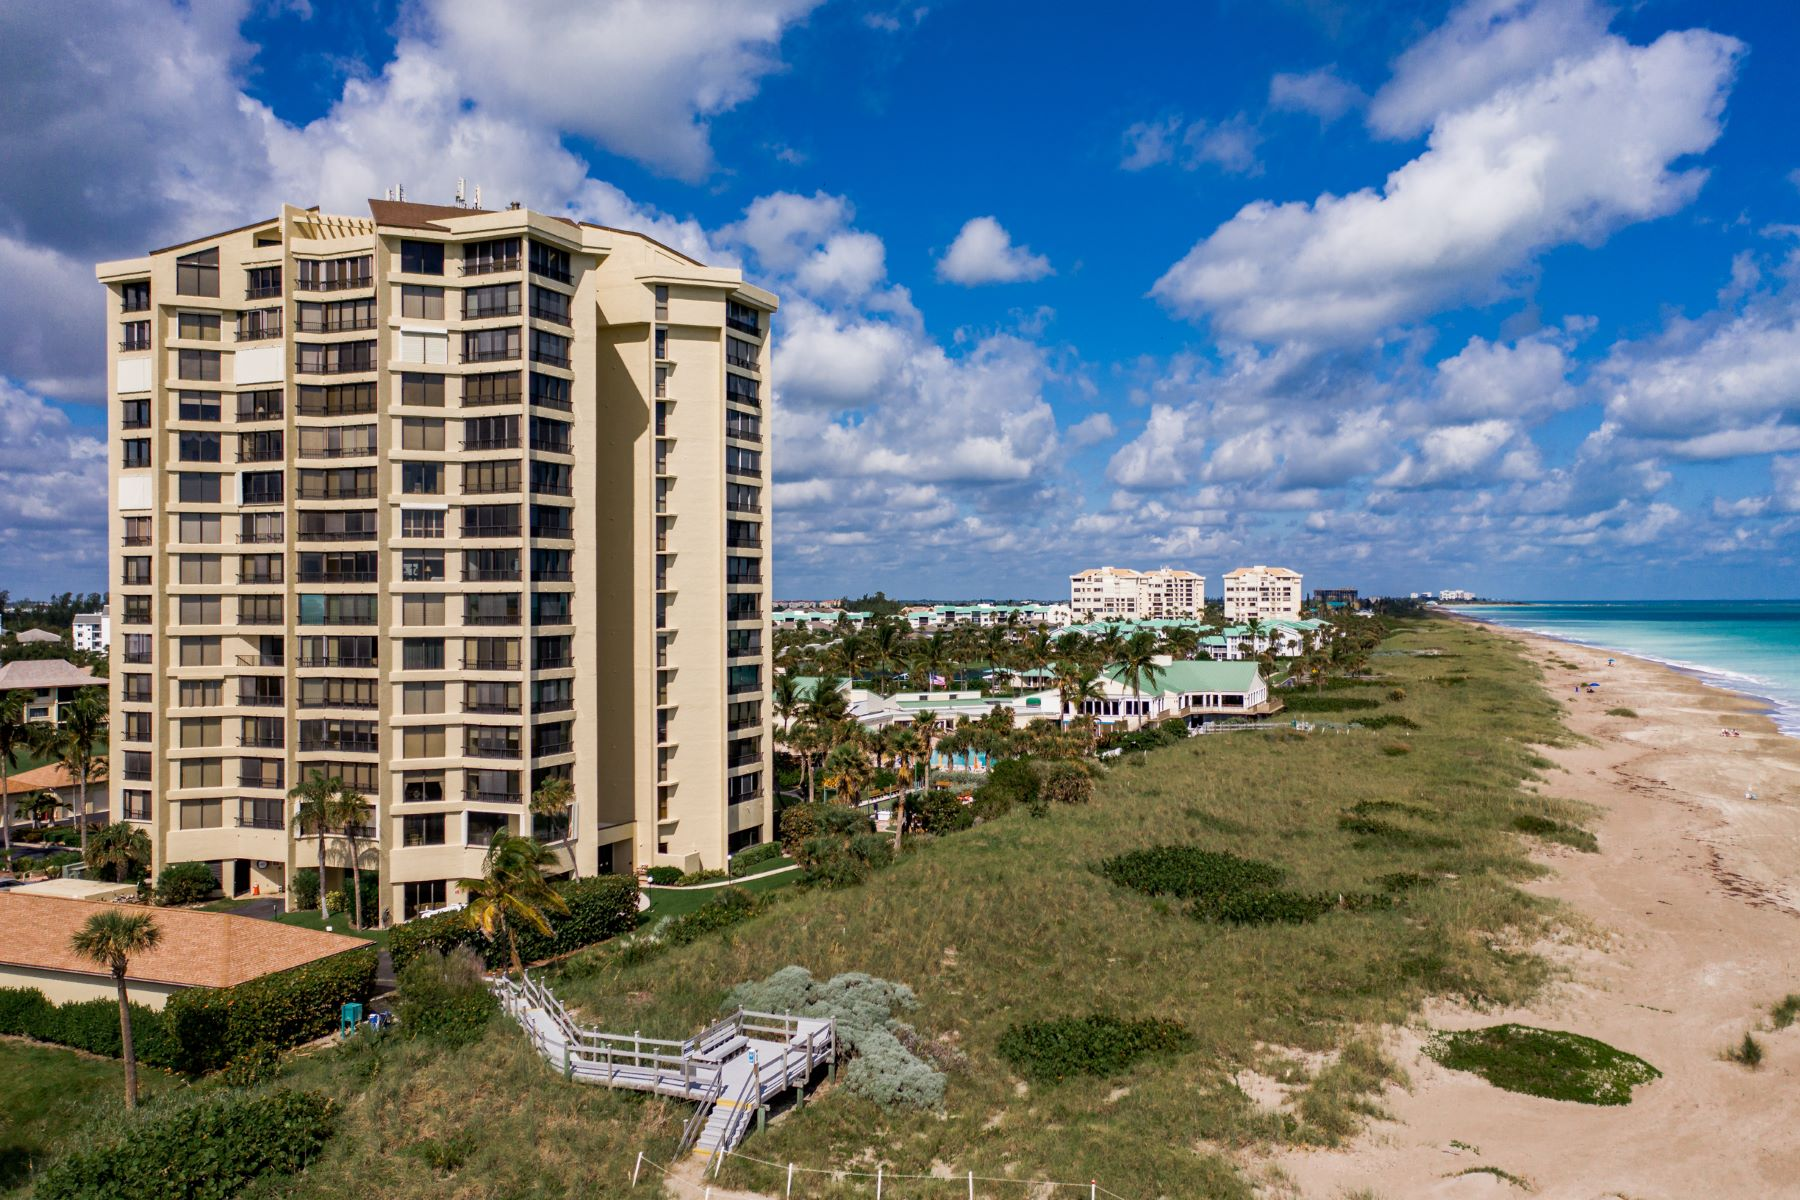 Property for Sale at Exceptionally Renovated Condo with Stunning Atlantic Ocean and Intracoastal View 2400 S Ocean Drive 8181 Fort Pierce, Florida 34949 United States